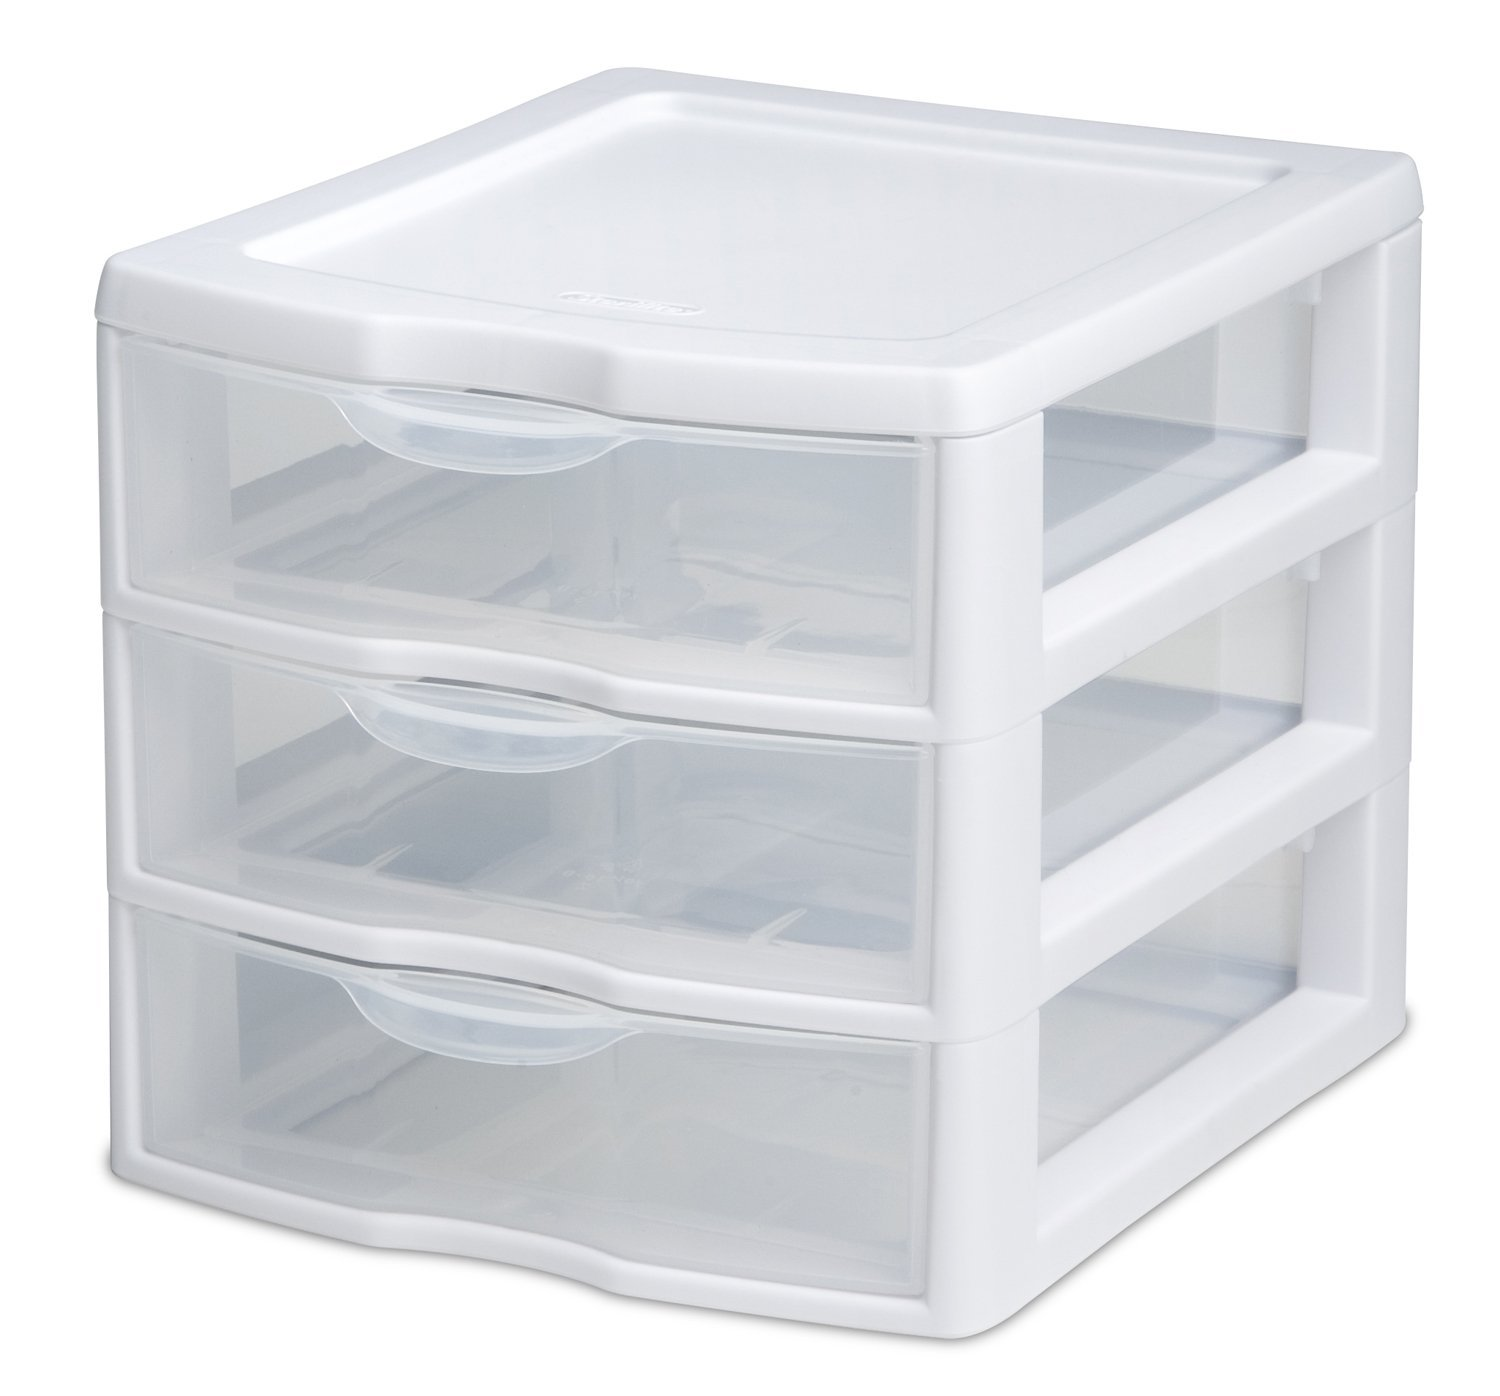 Amazoncom STERILITE 3 Drawer Mini Unit 20738006 Clear Home Kitchen